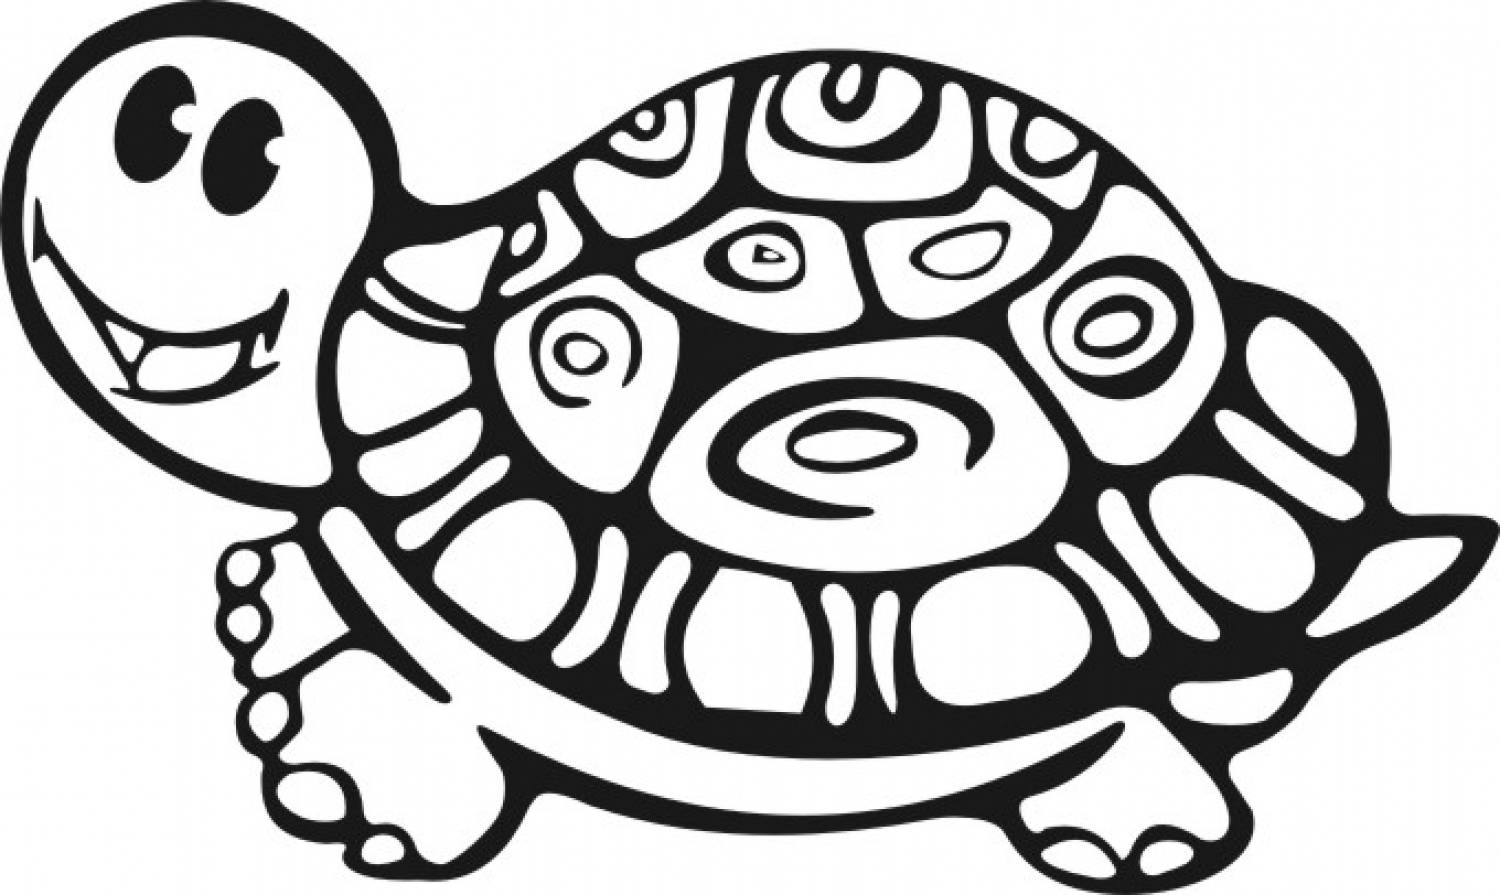 1500x895 Dazzling Design Turtle Coloring Pages For Adults Printable